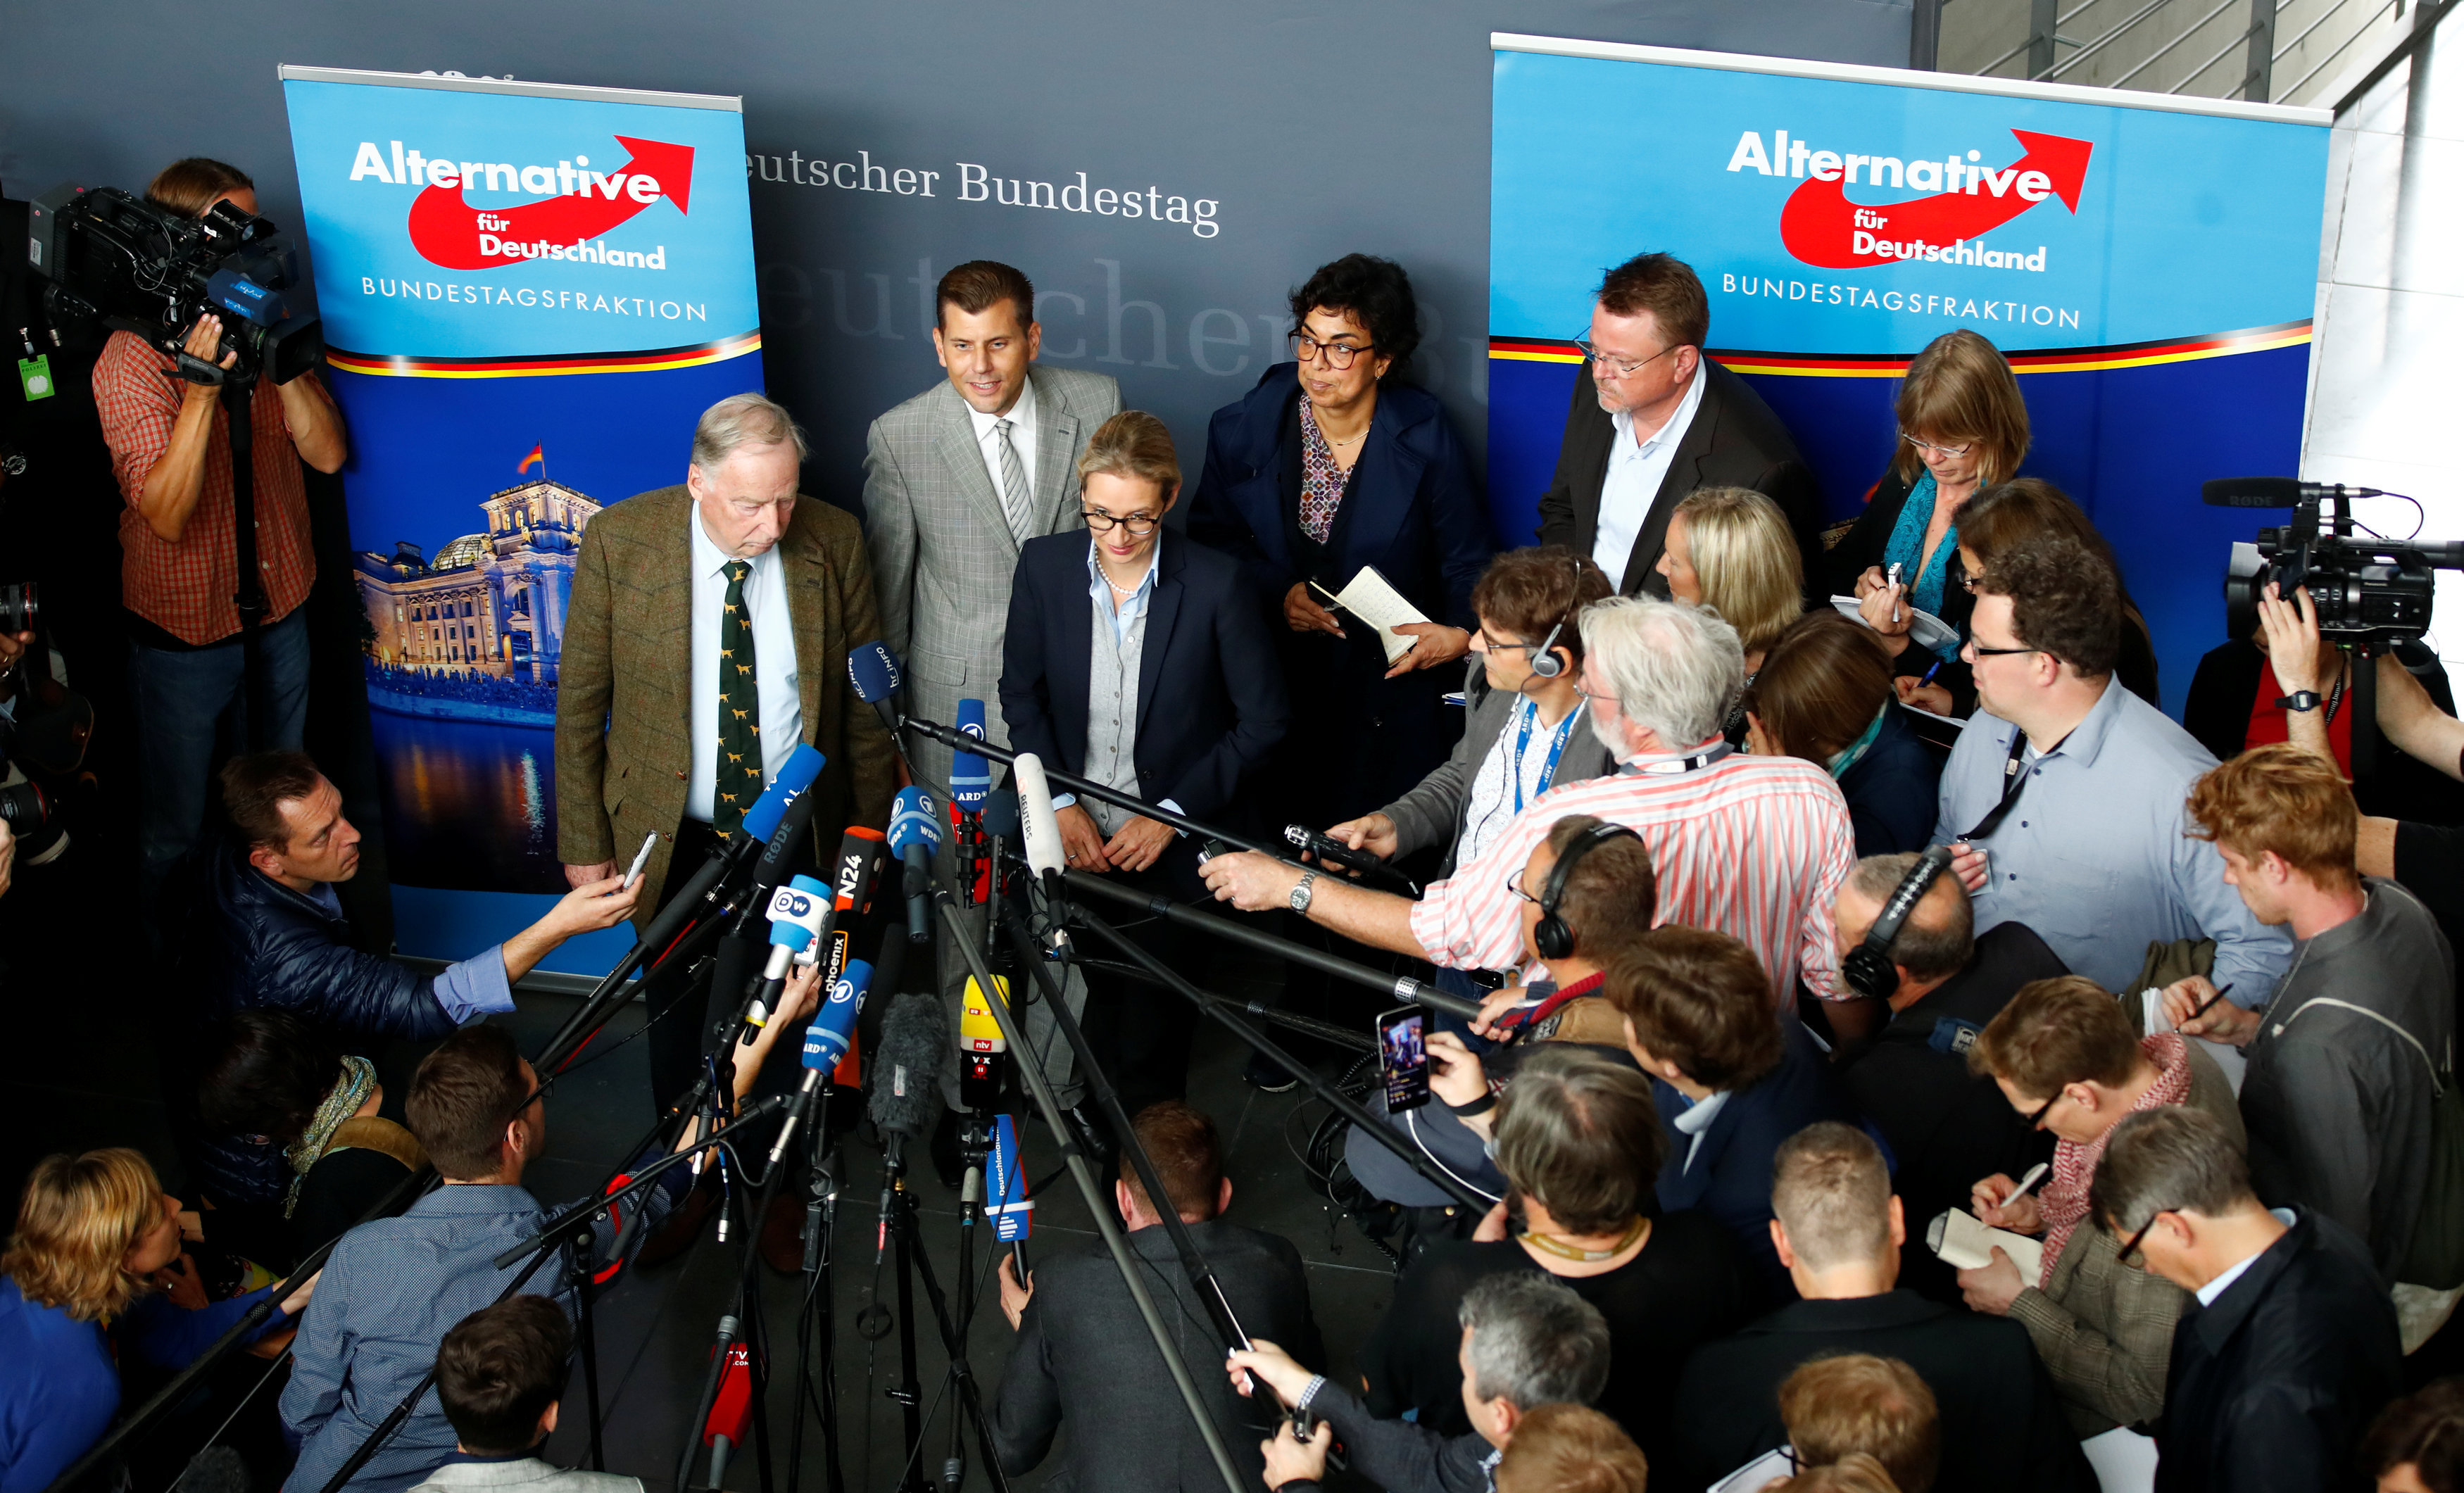 Anti-immigration party Alternative fuer Deutschland AfD top candidates Alice Weidel and Alexander Gauland address a news conference before a get together for their first parliamentary meeting in Berlin, Germany September 26, 2017